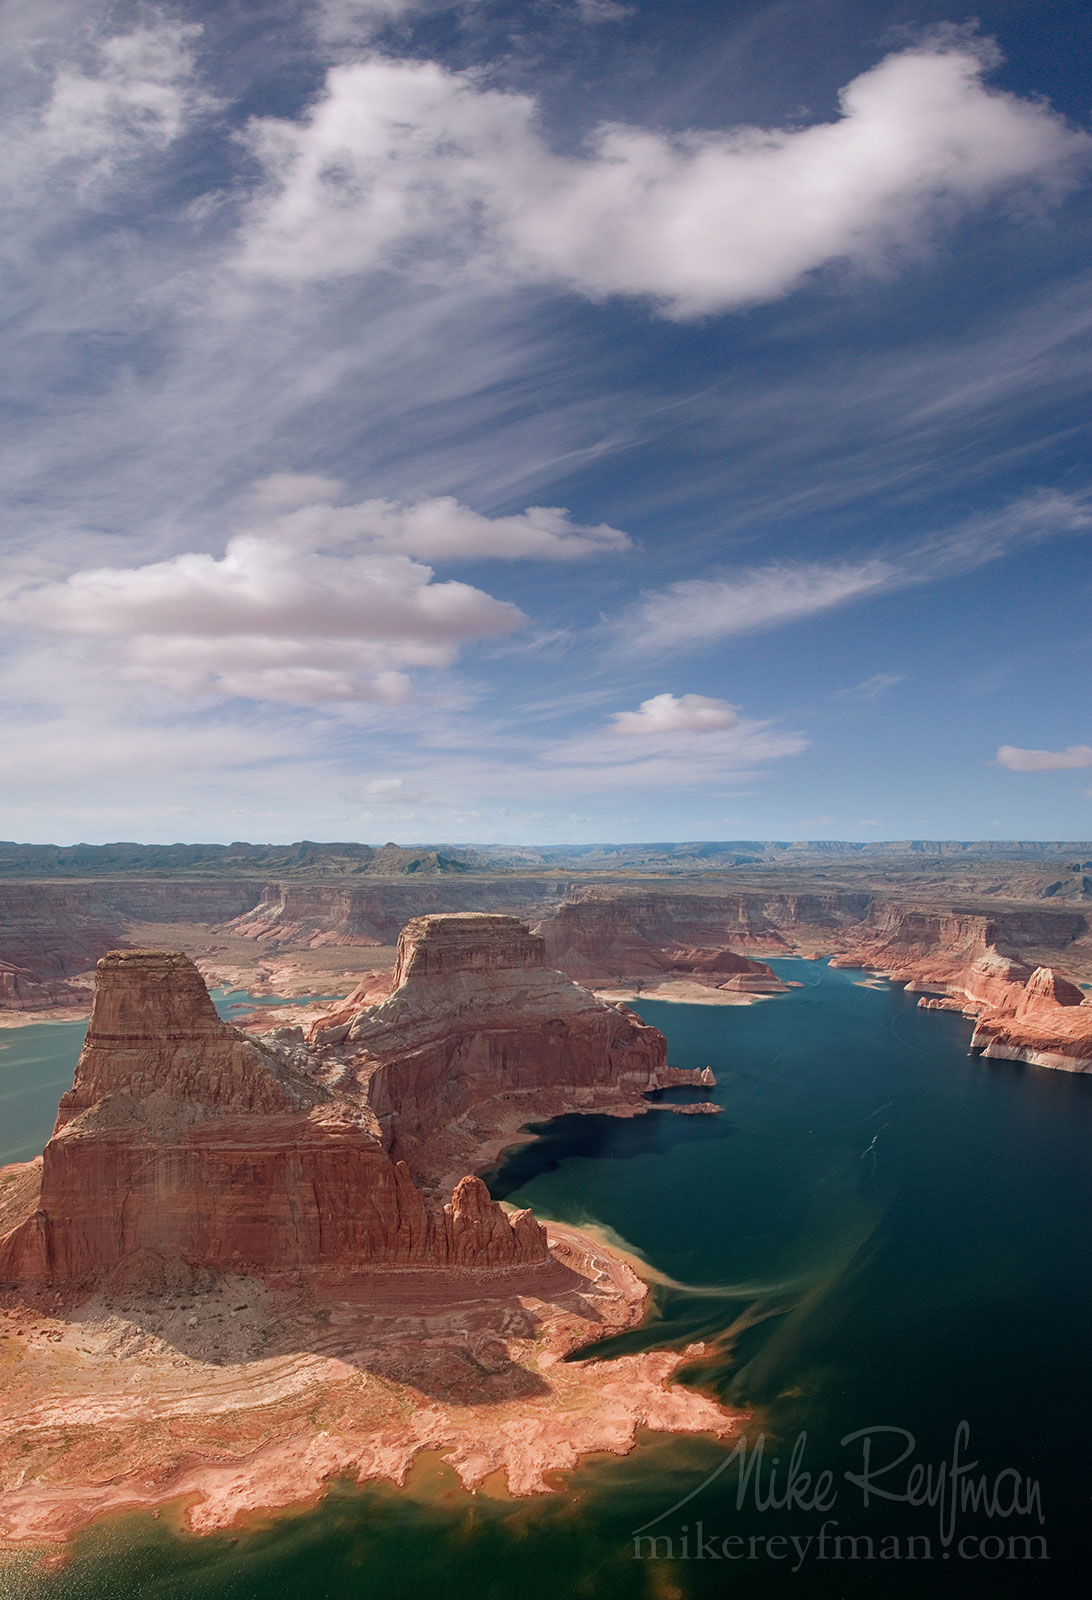 Gunsight Butte and North Side of Padre Bay. Glen Canyon NRA, Lake Powell, Utah/Arizona, USA. Aerial. 078-LP3_MER6703.jpg - Lake Powell, Glen Canyon NAR. Colorado and Sun Juan Rivers. Utah/Arizona, USA  - Mike Reyfman Photography